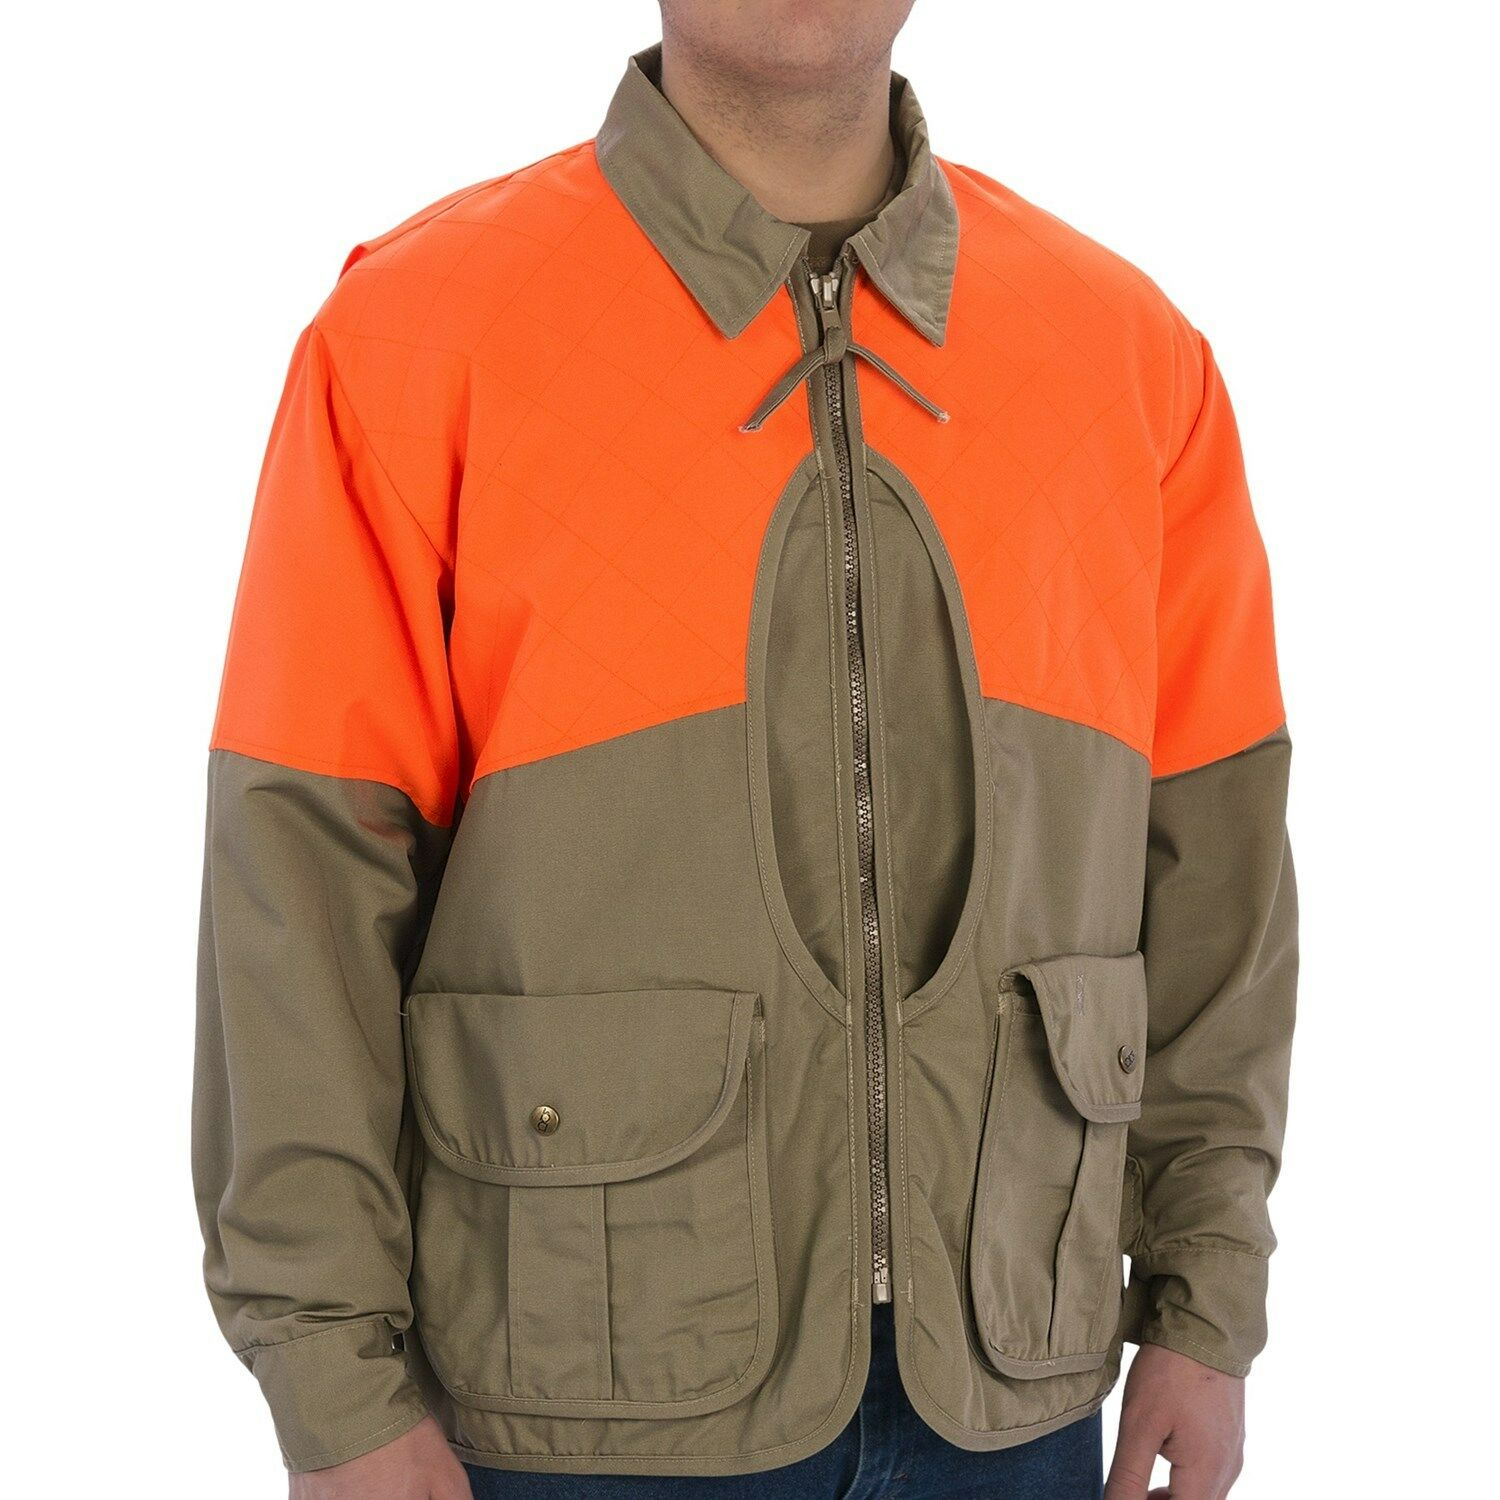 Bob Allen Allen Allen Upland Game Hunting Field Jacket Khaki Tan Blaze naranja M Chest 38-40  85fa11